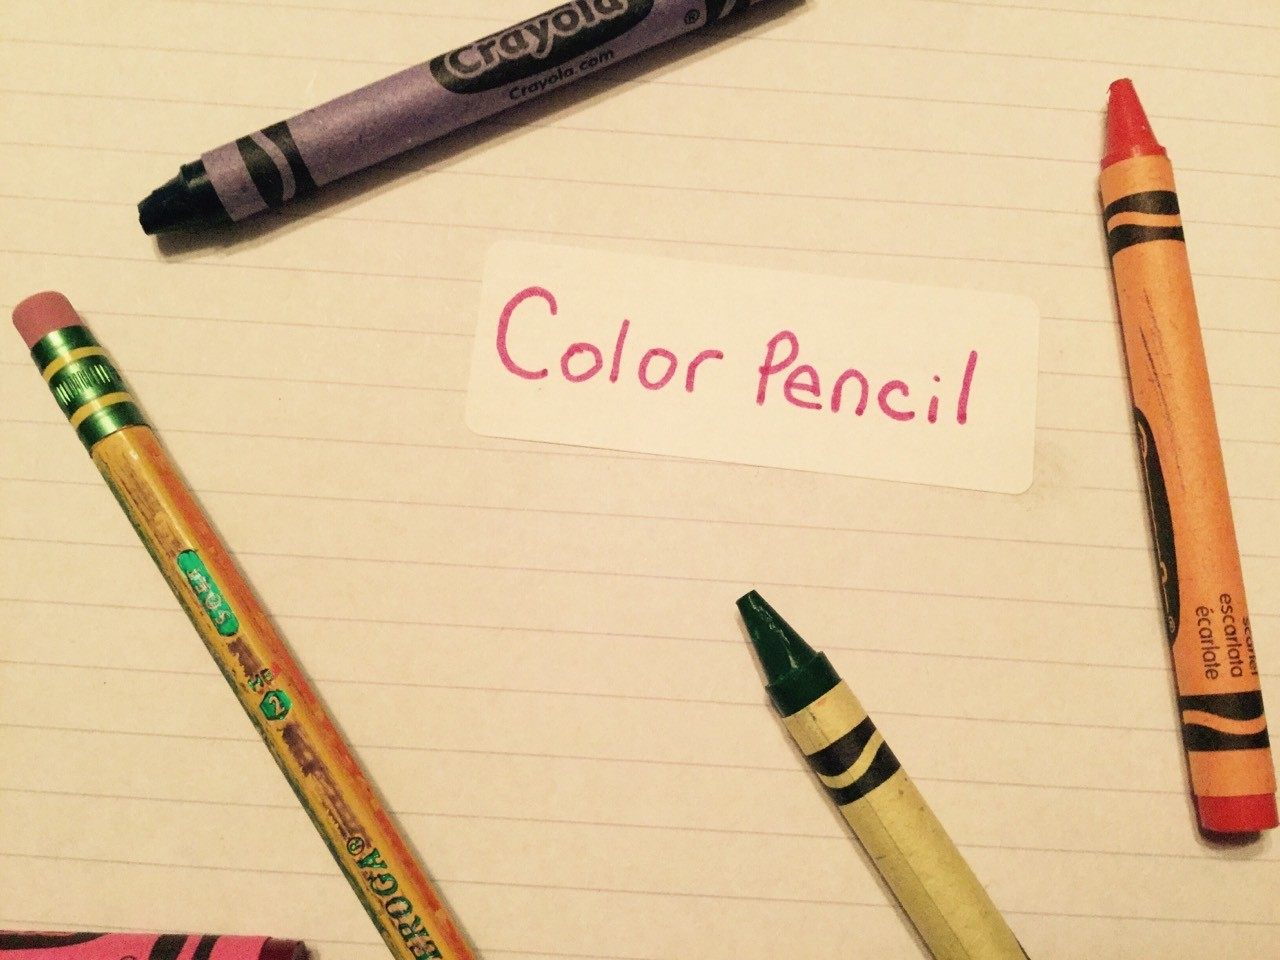 Get some crayons and color a pencil. Then it will be awesome!